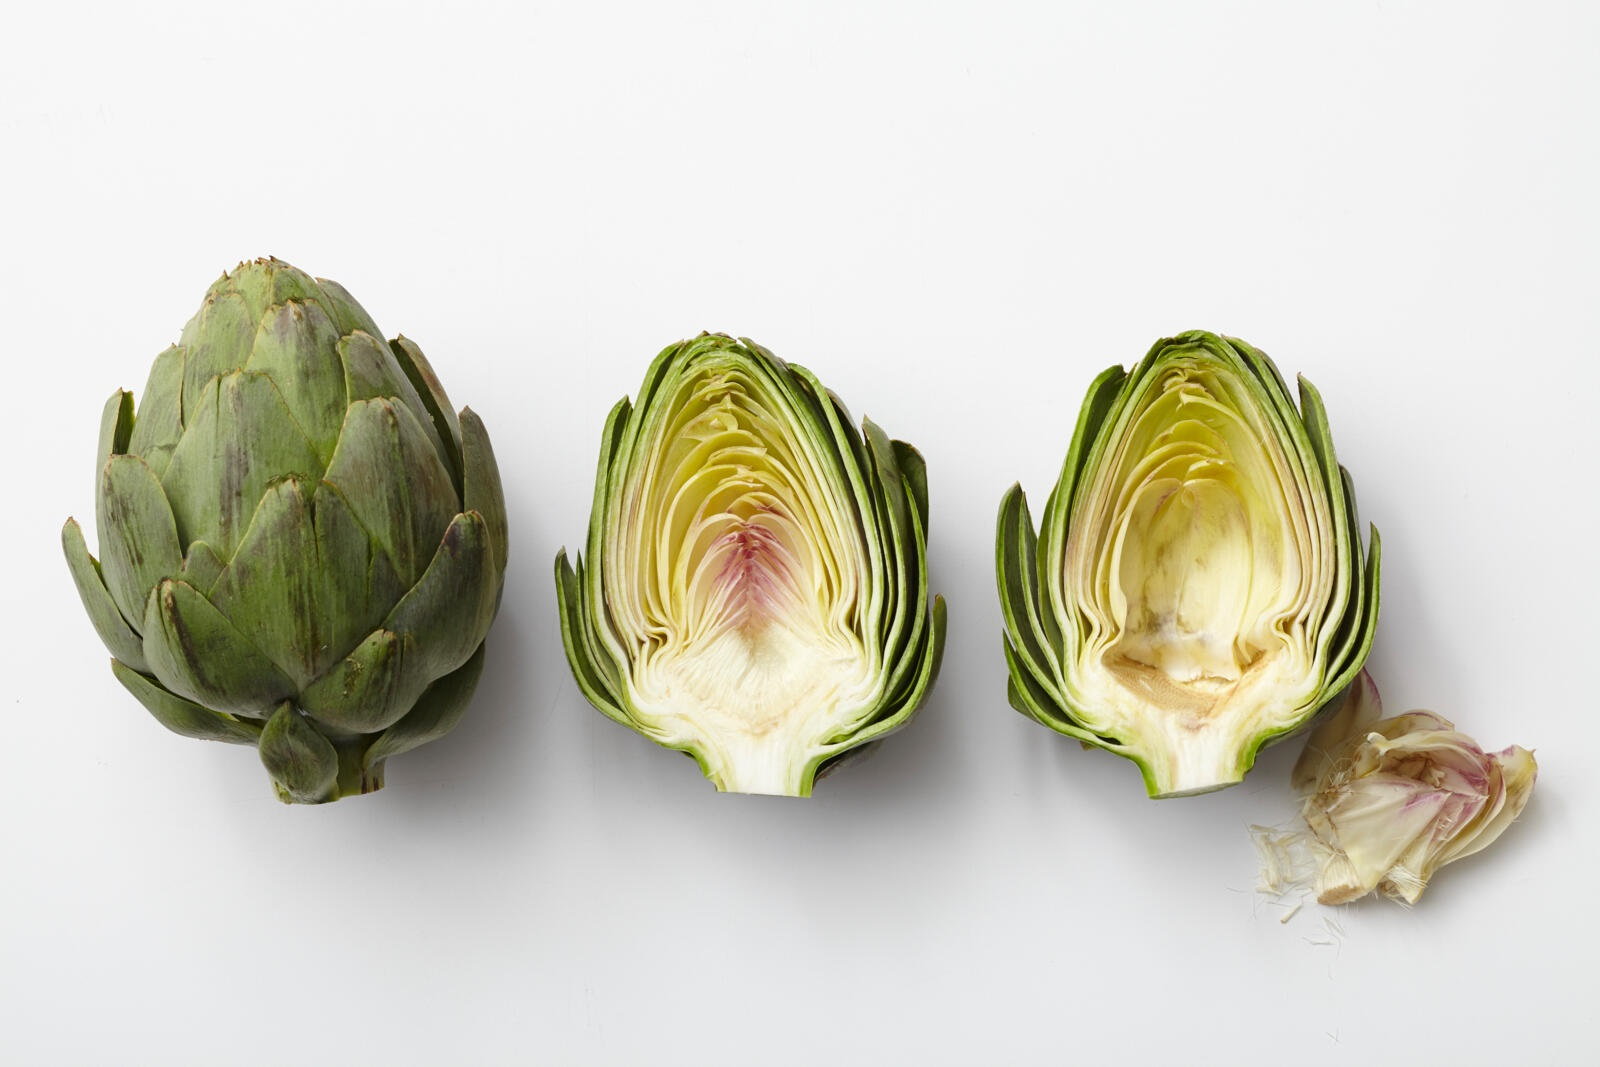 fresh artichokes whole and cut in half lengthwise